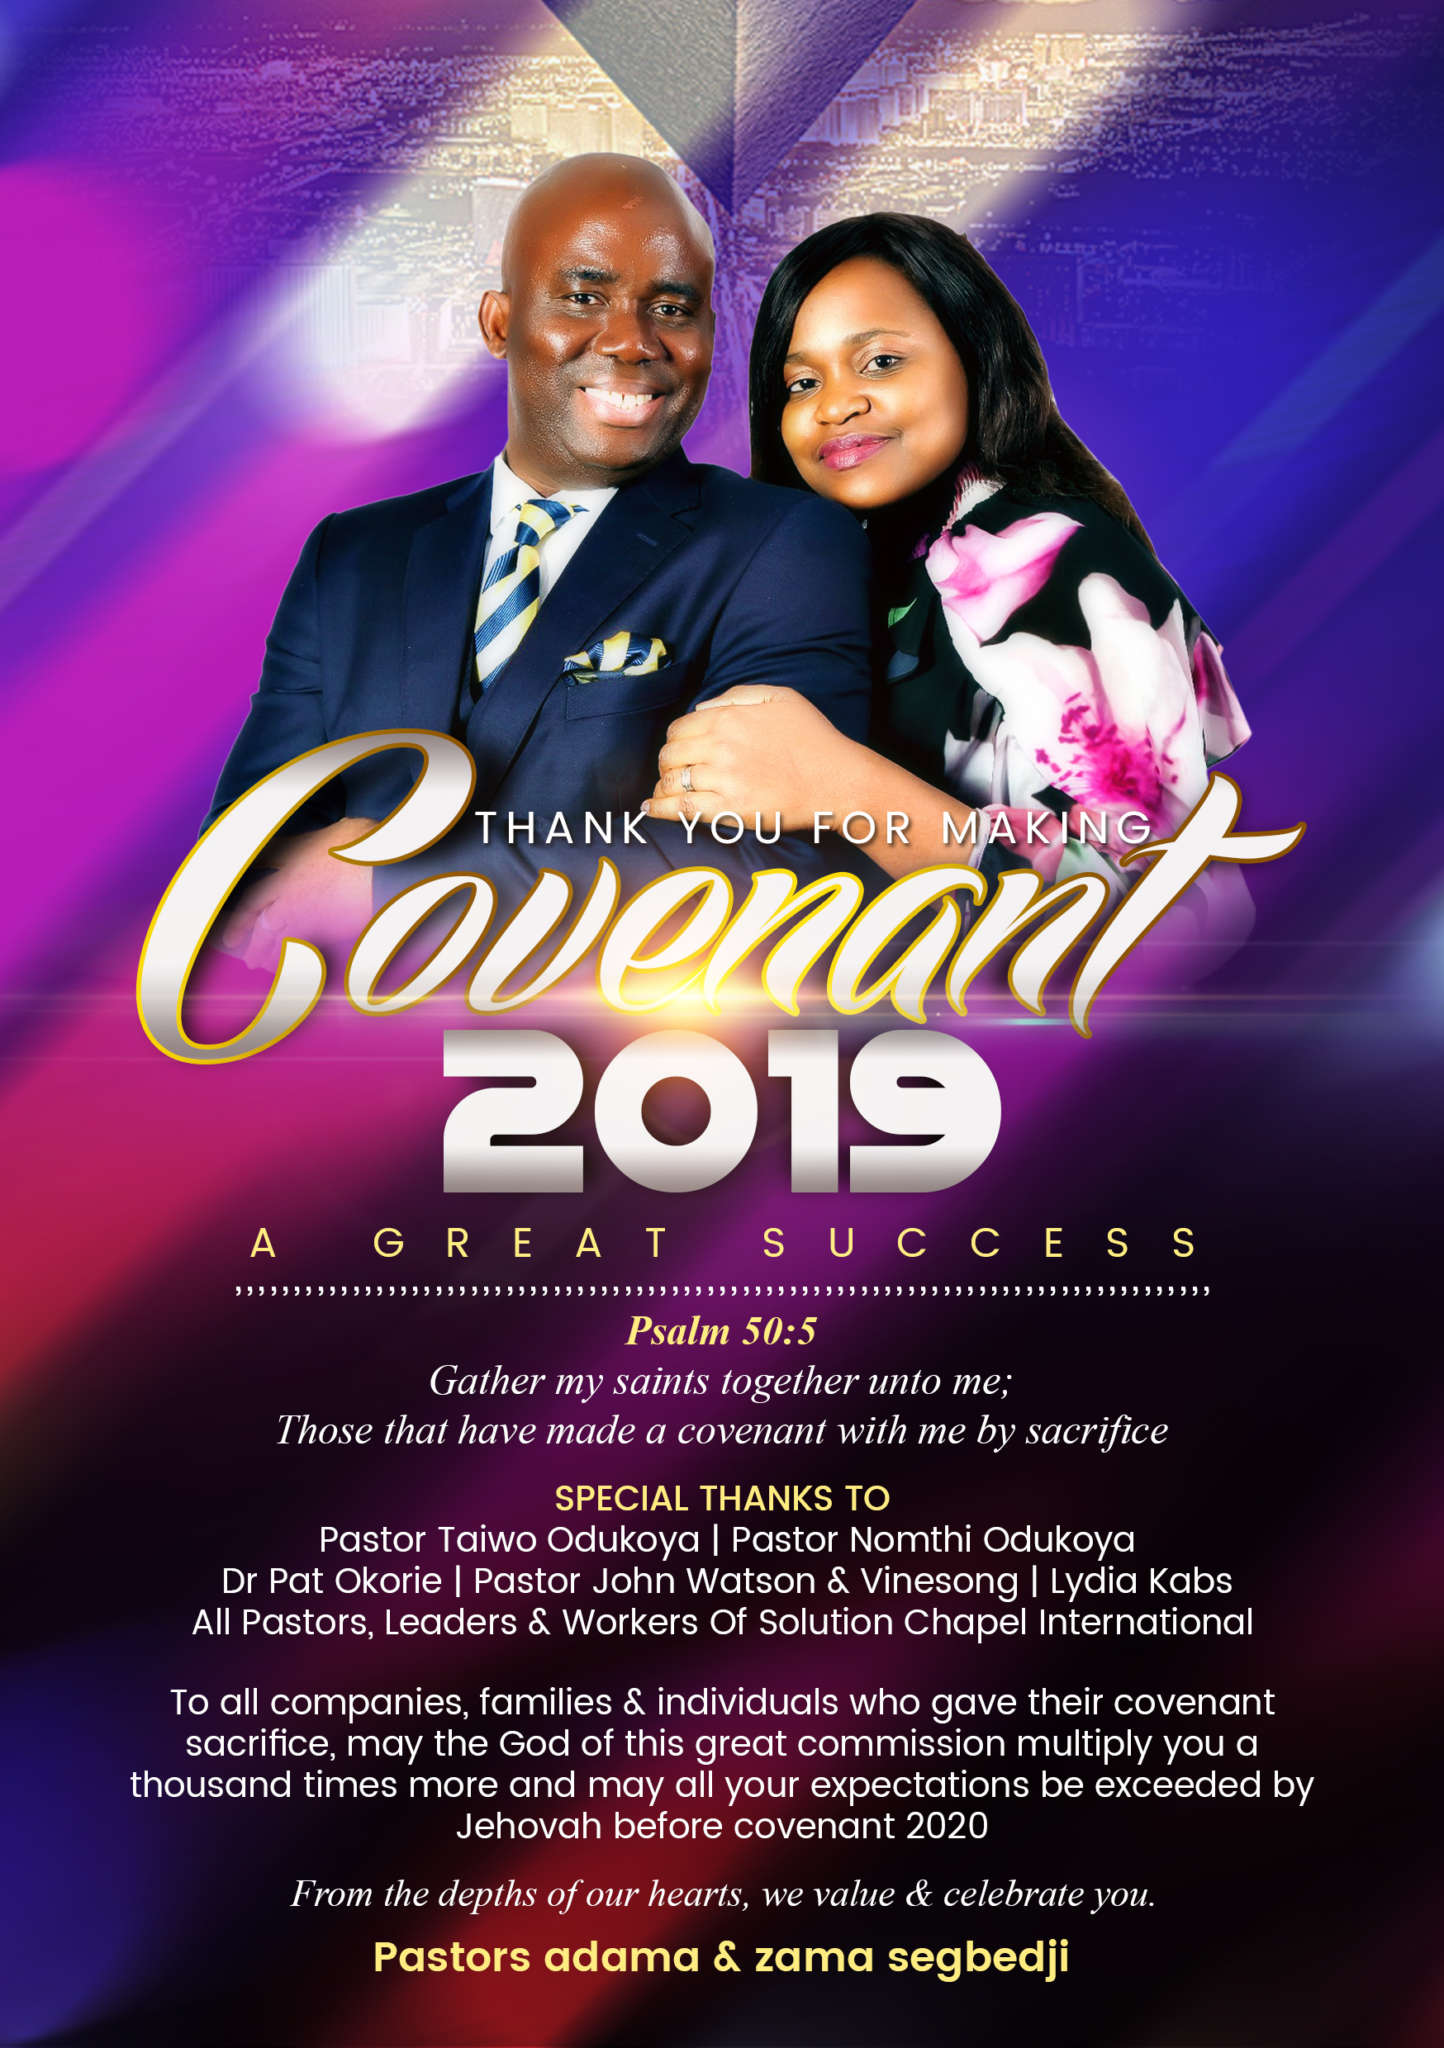 THANK YOU FOR MAKING COVENANT 2019 A GREAT SUCCESS